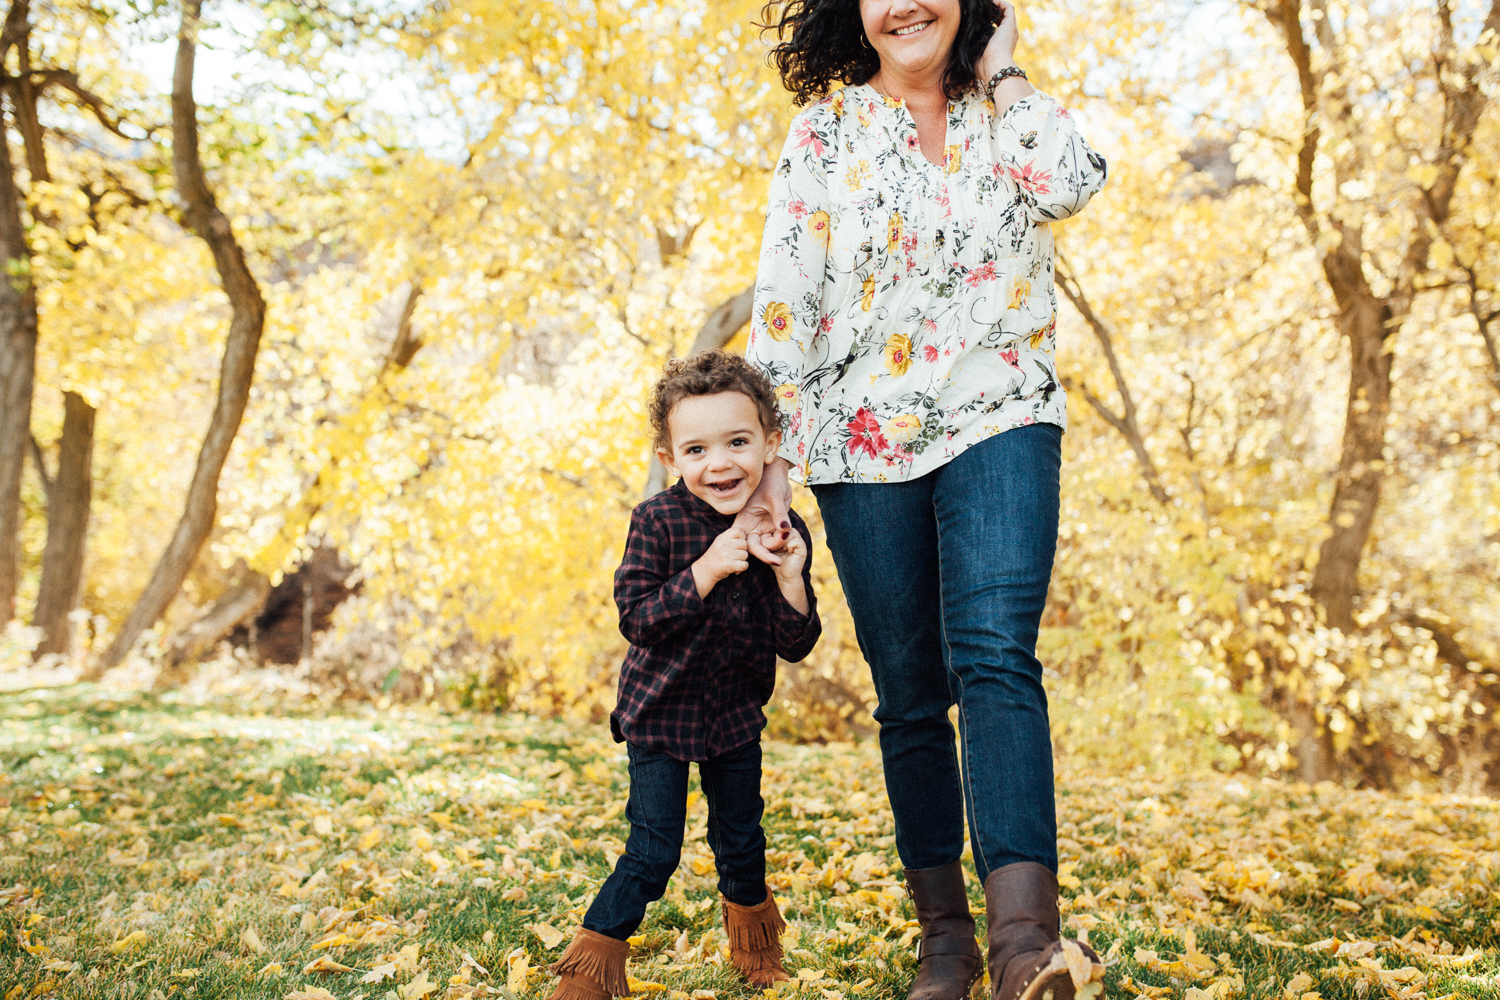 candid-photo-of-mother-and-son-in-fall-leaves-during-free-mini-shoot-with-jen-fairchild-photography-in-salt-lake-city-utah